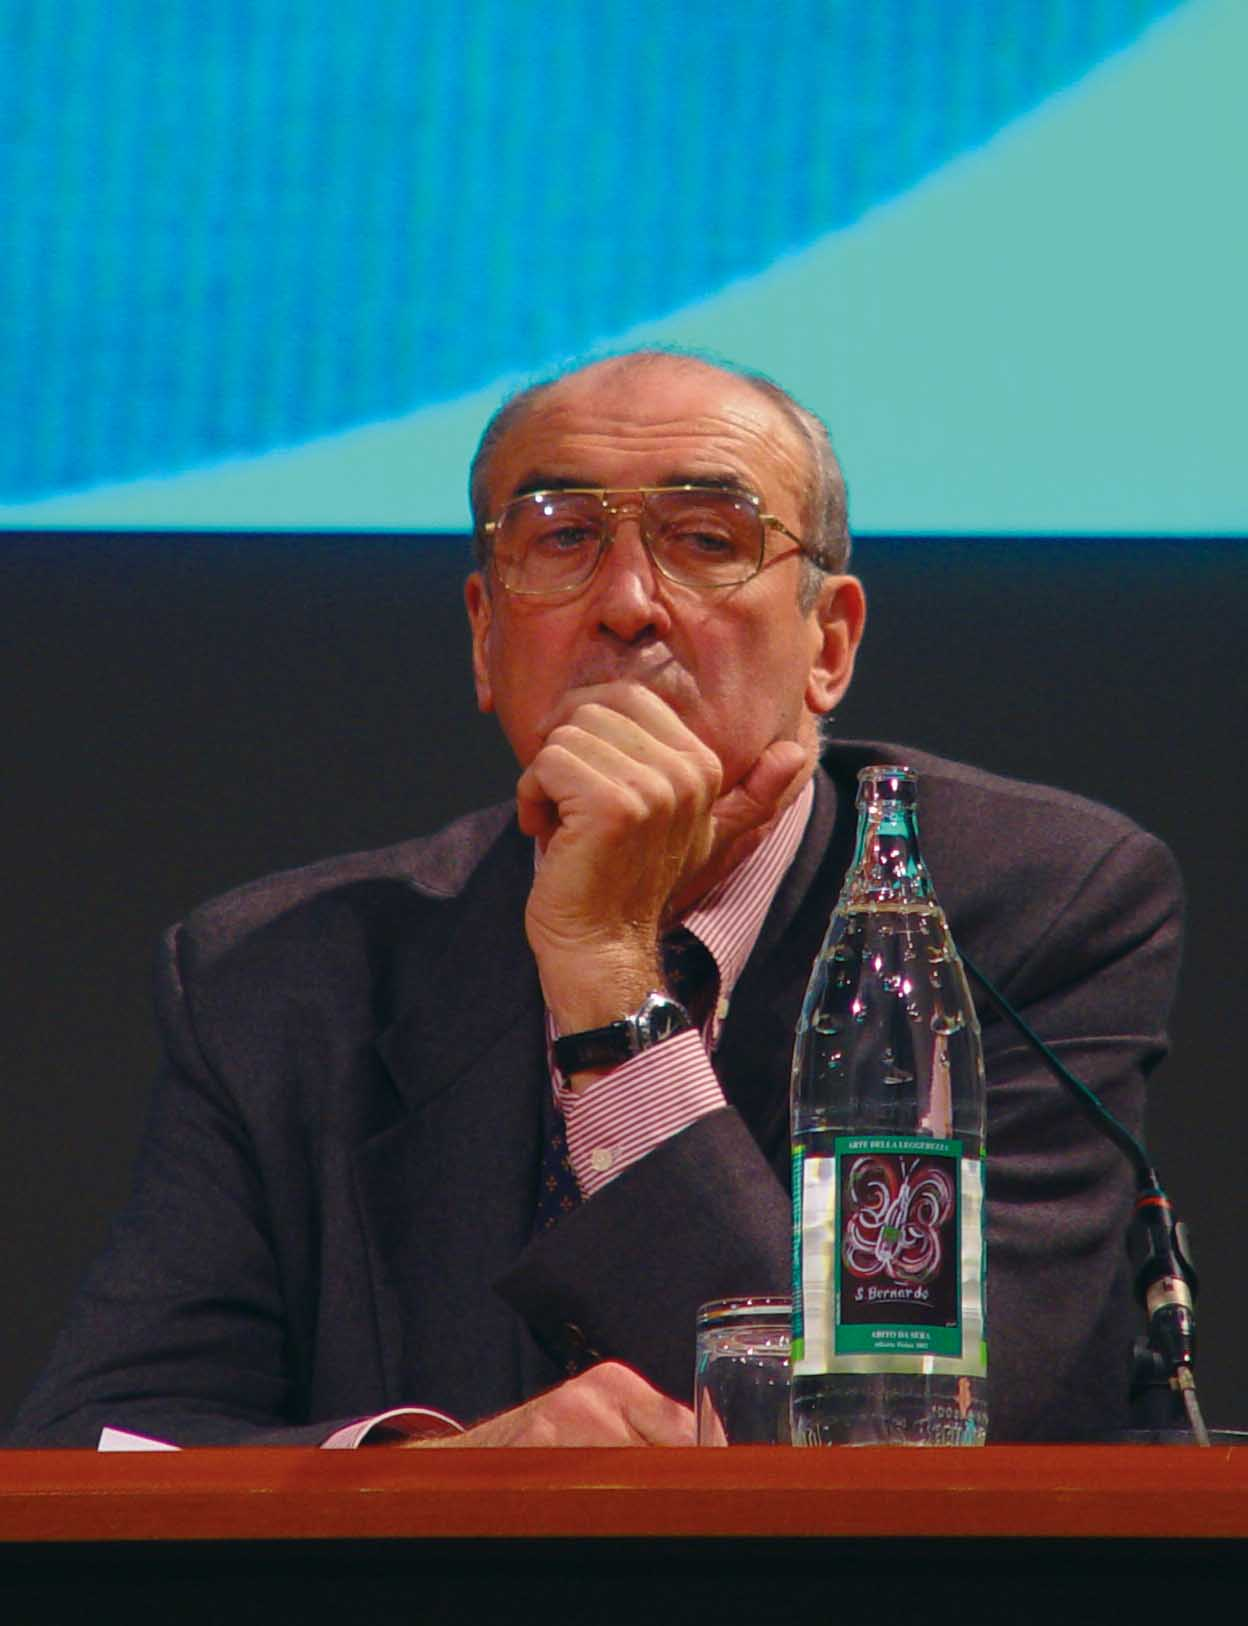 Gianni Filipponi